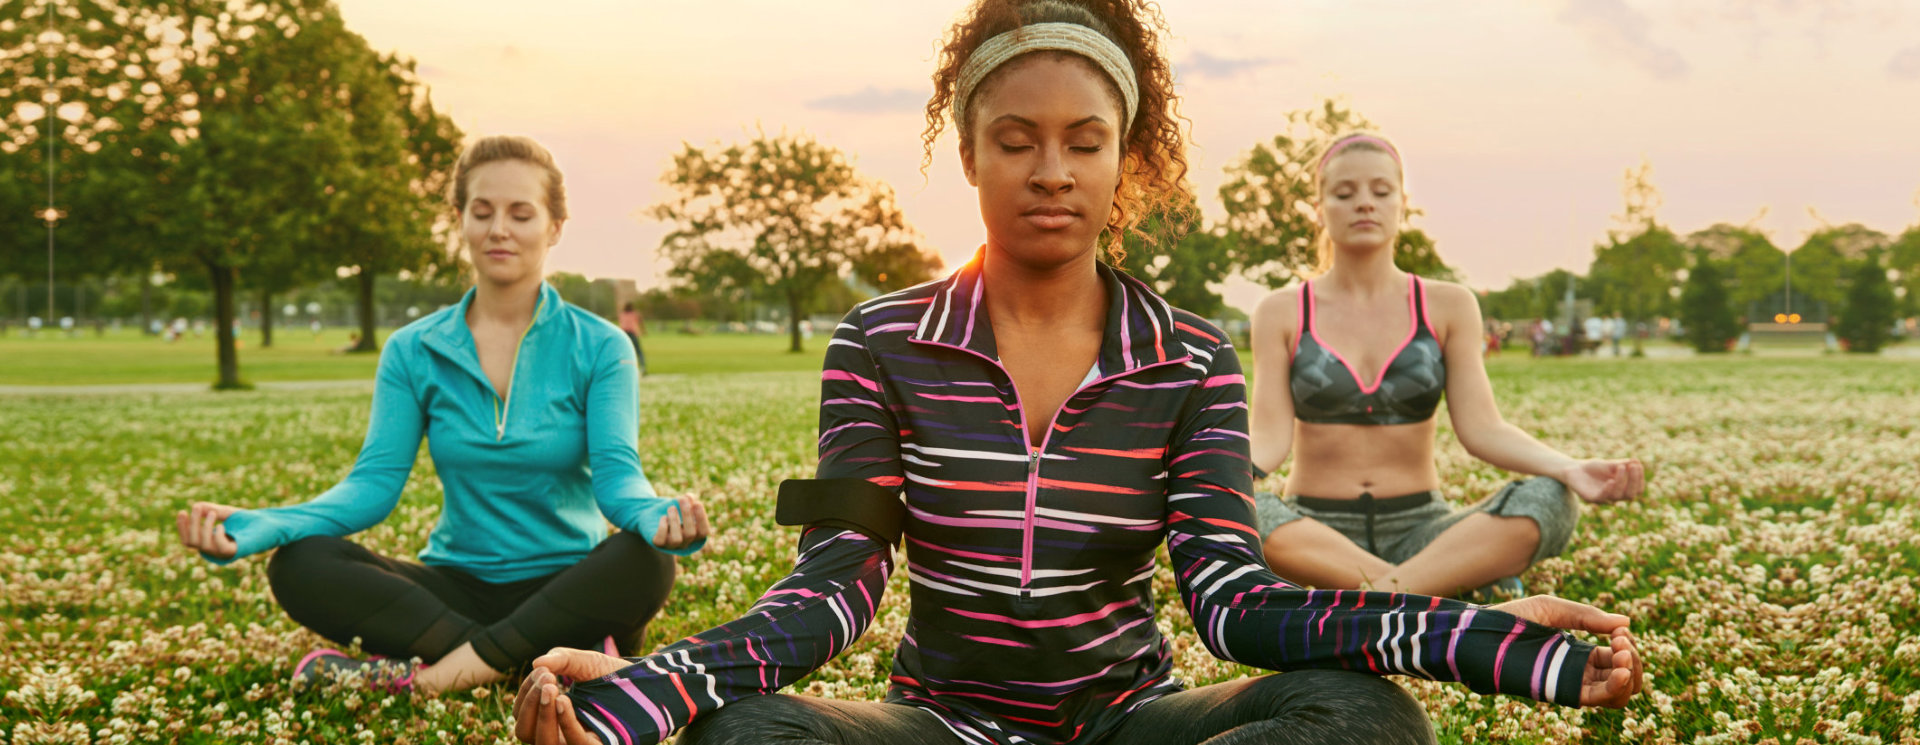 group of woman doing a meditation